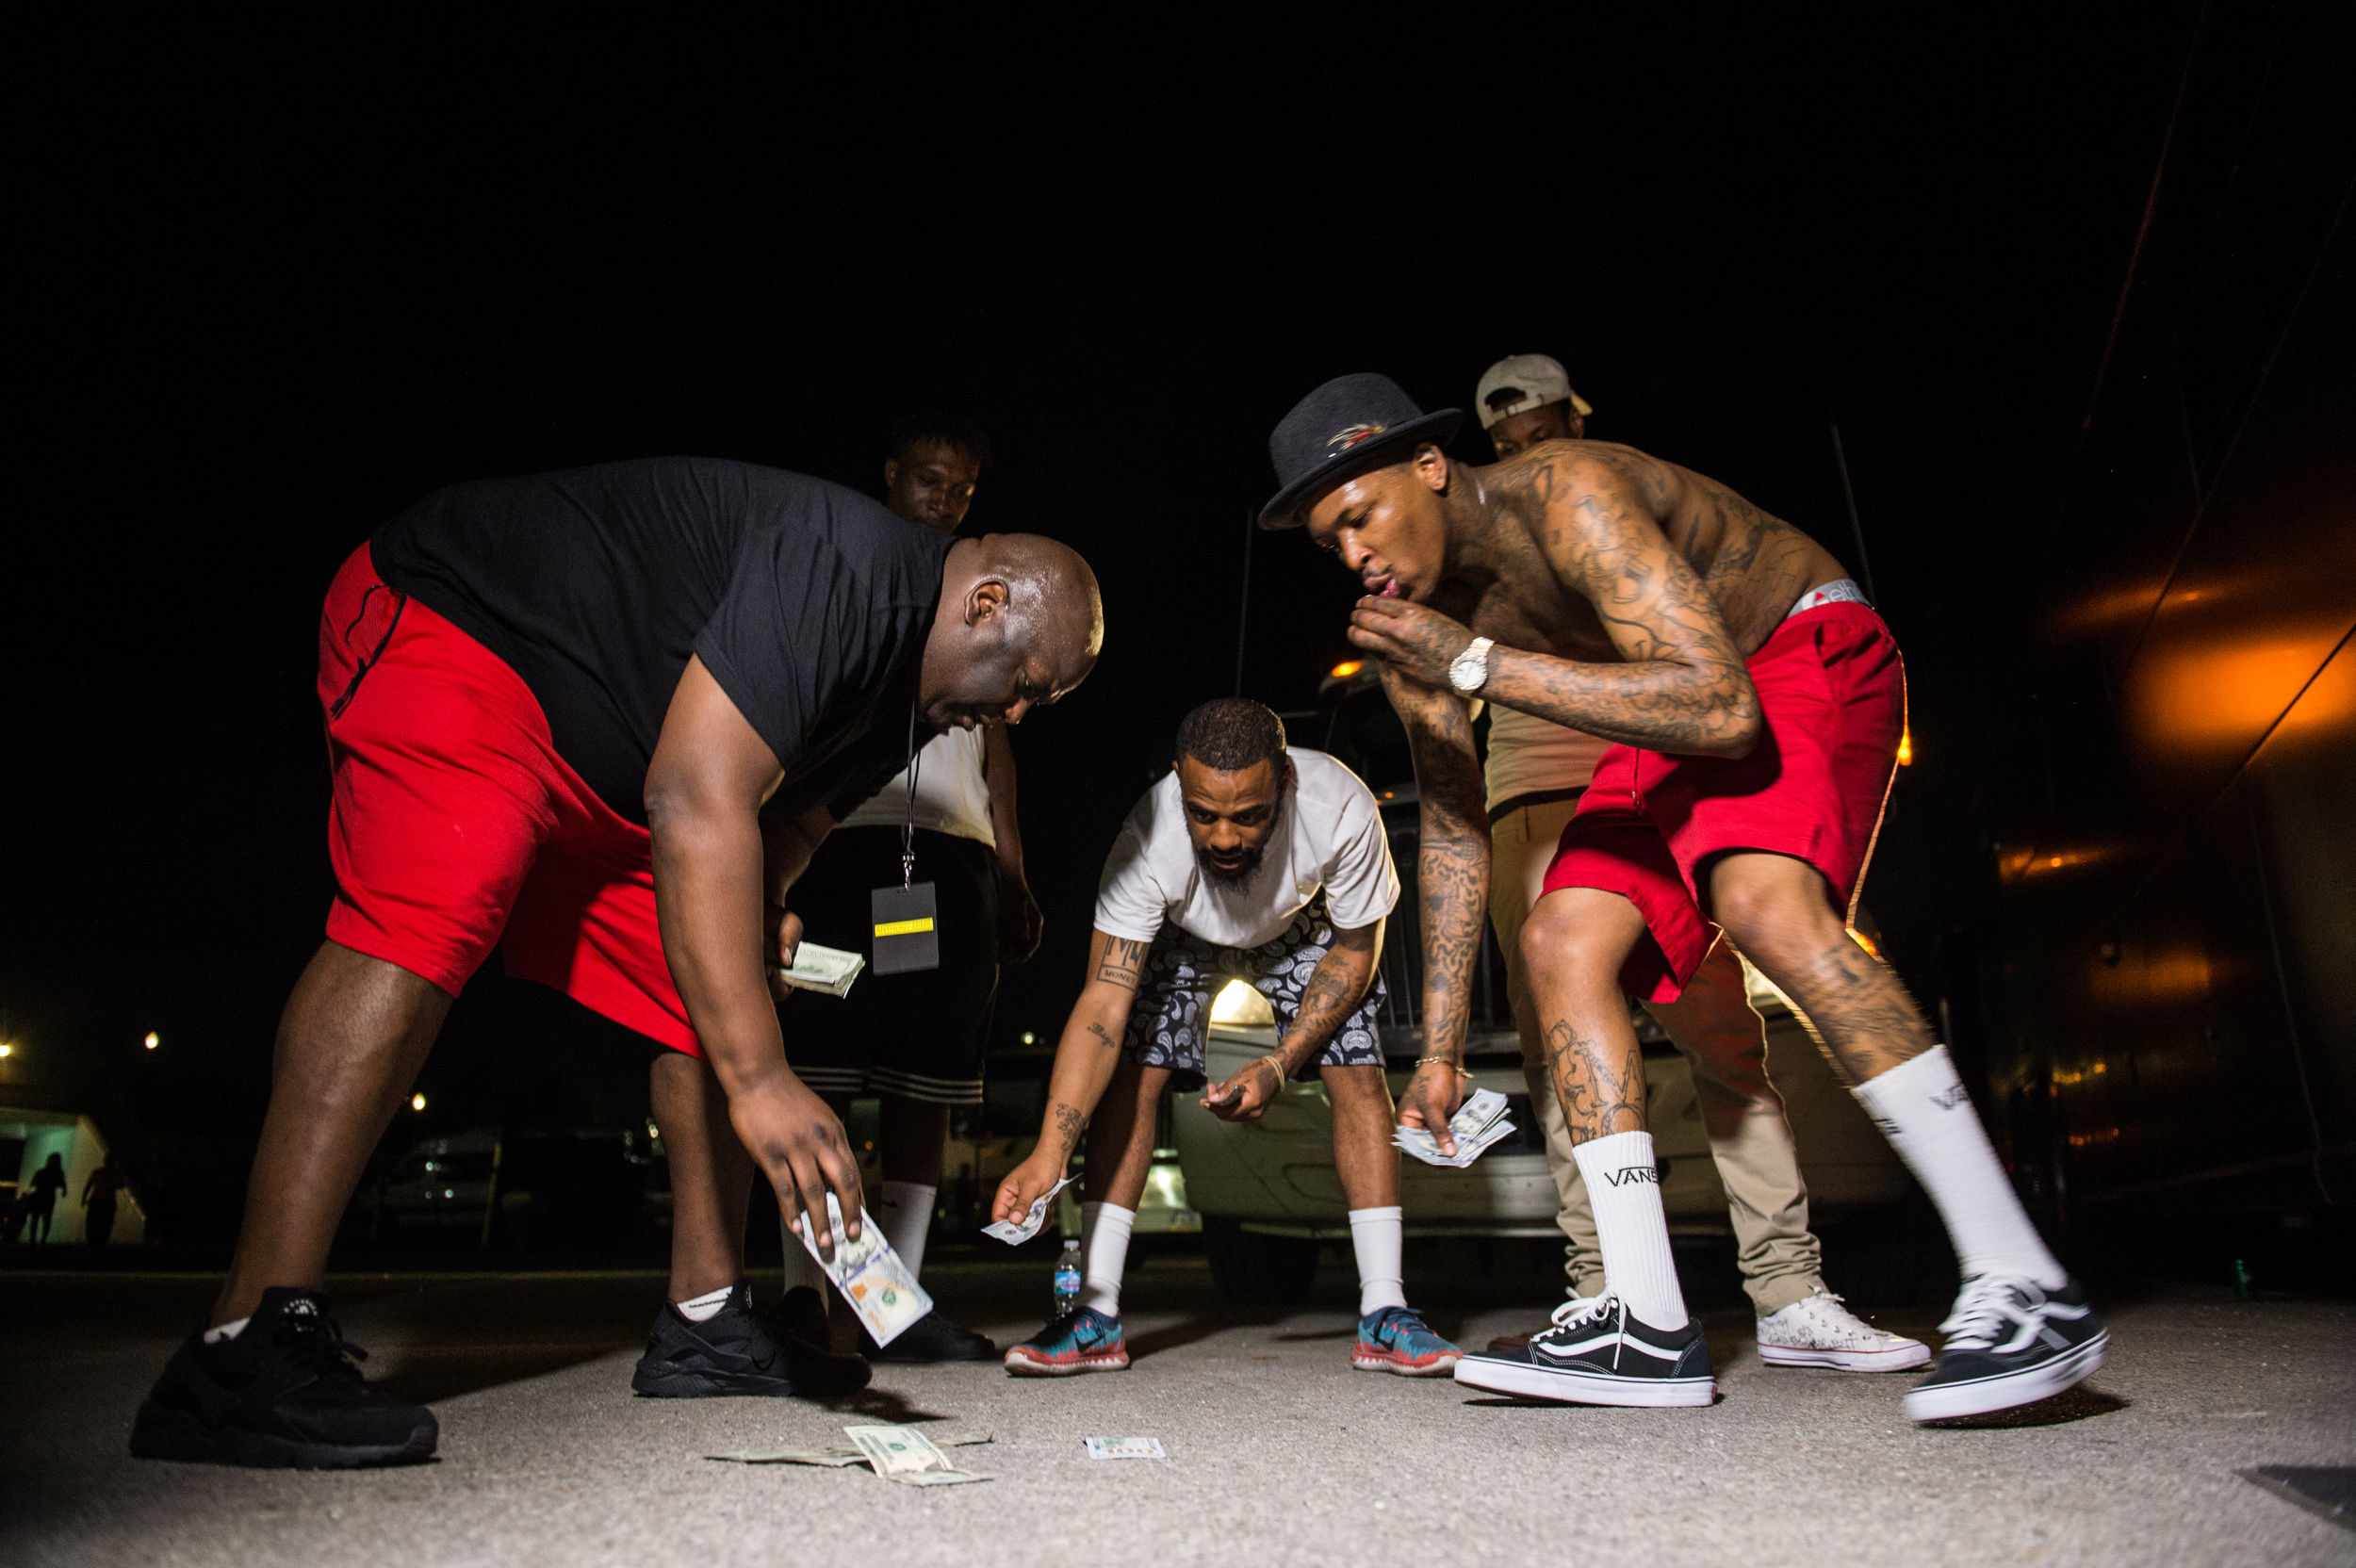 YG and CMG shooting dice in Indiana